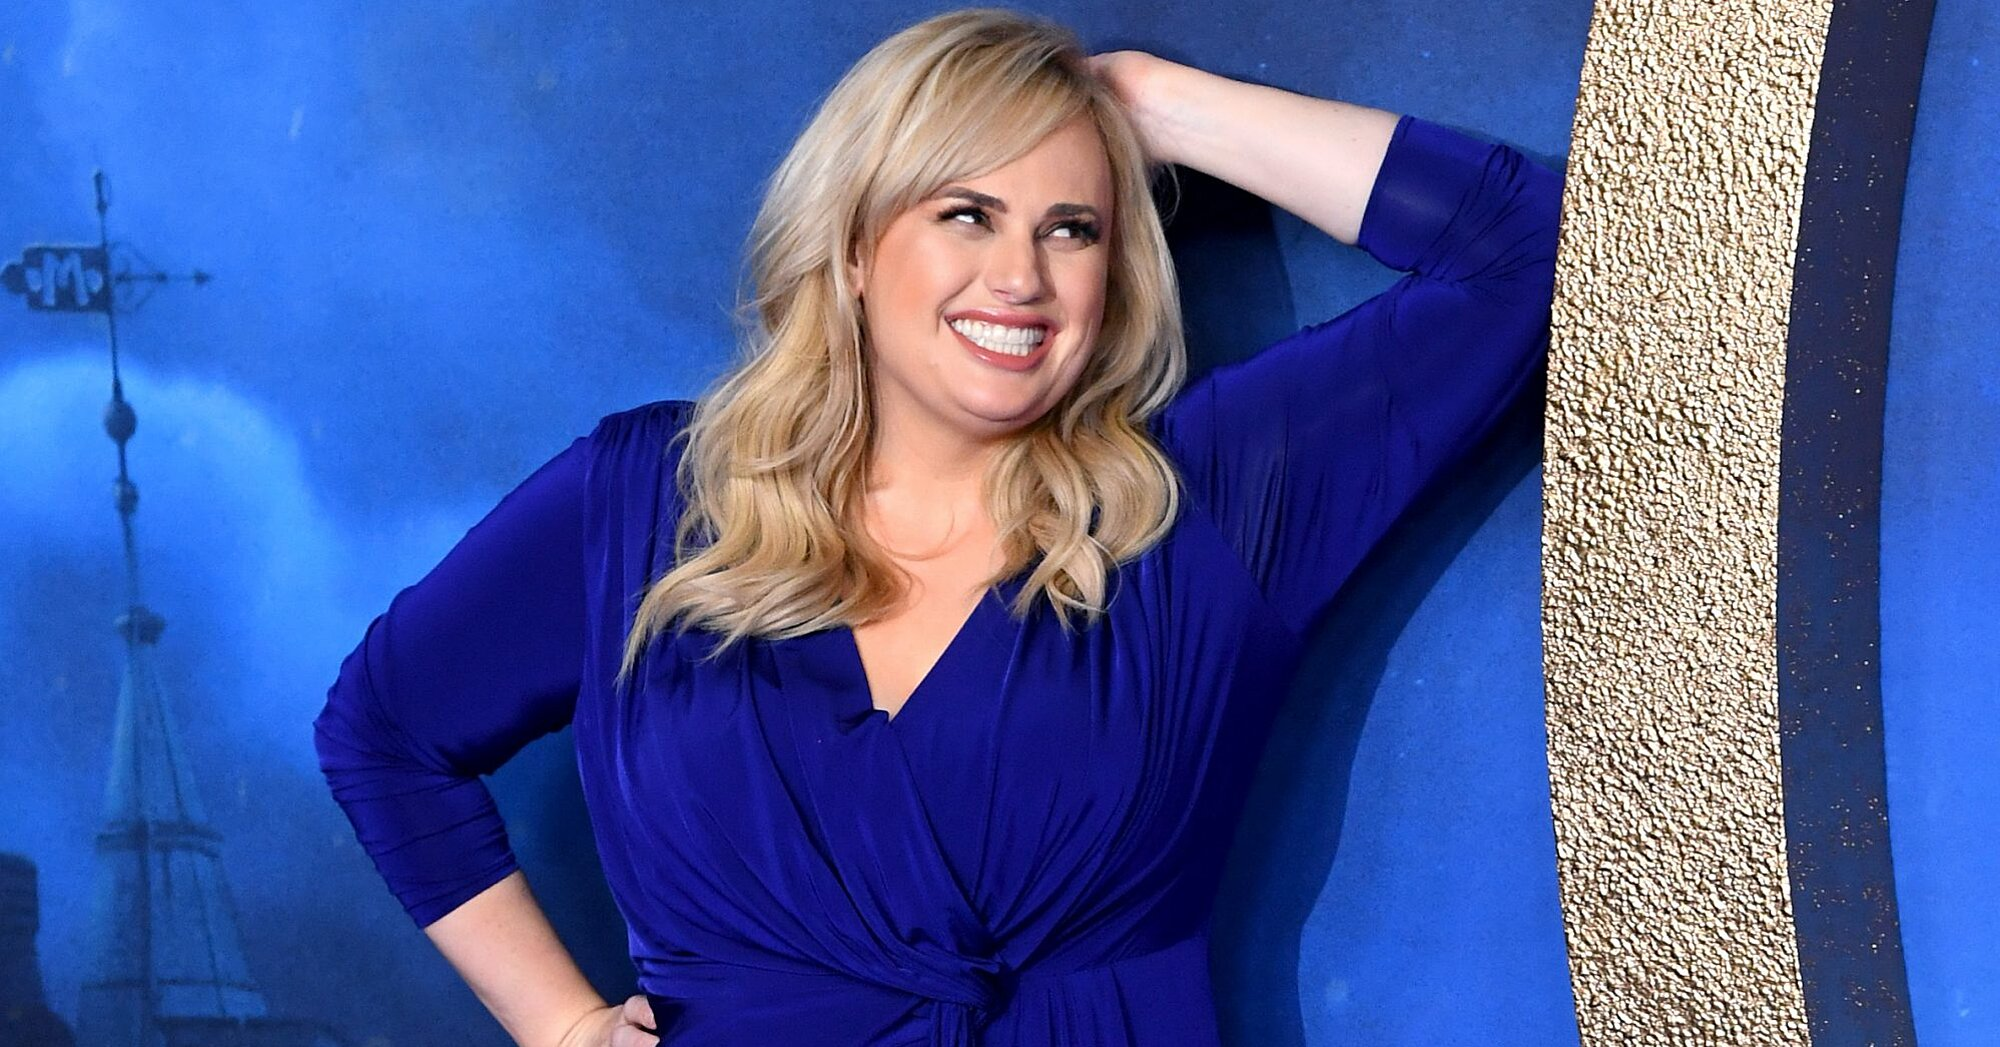 You Need To See This Video Of Rebel Wilson Doing Arm Workouts With A Big Bottle Of Vodka photo